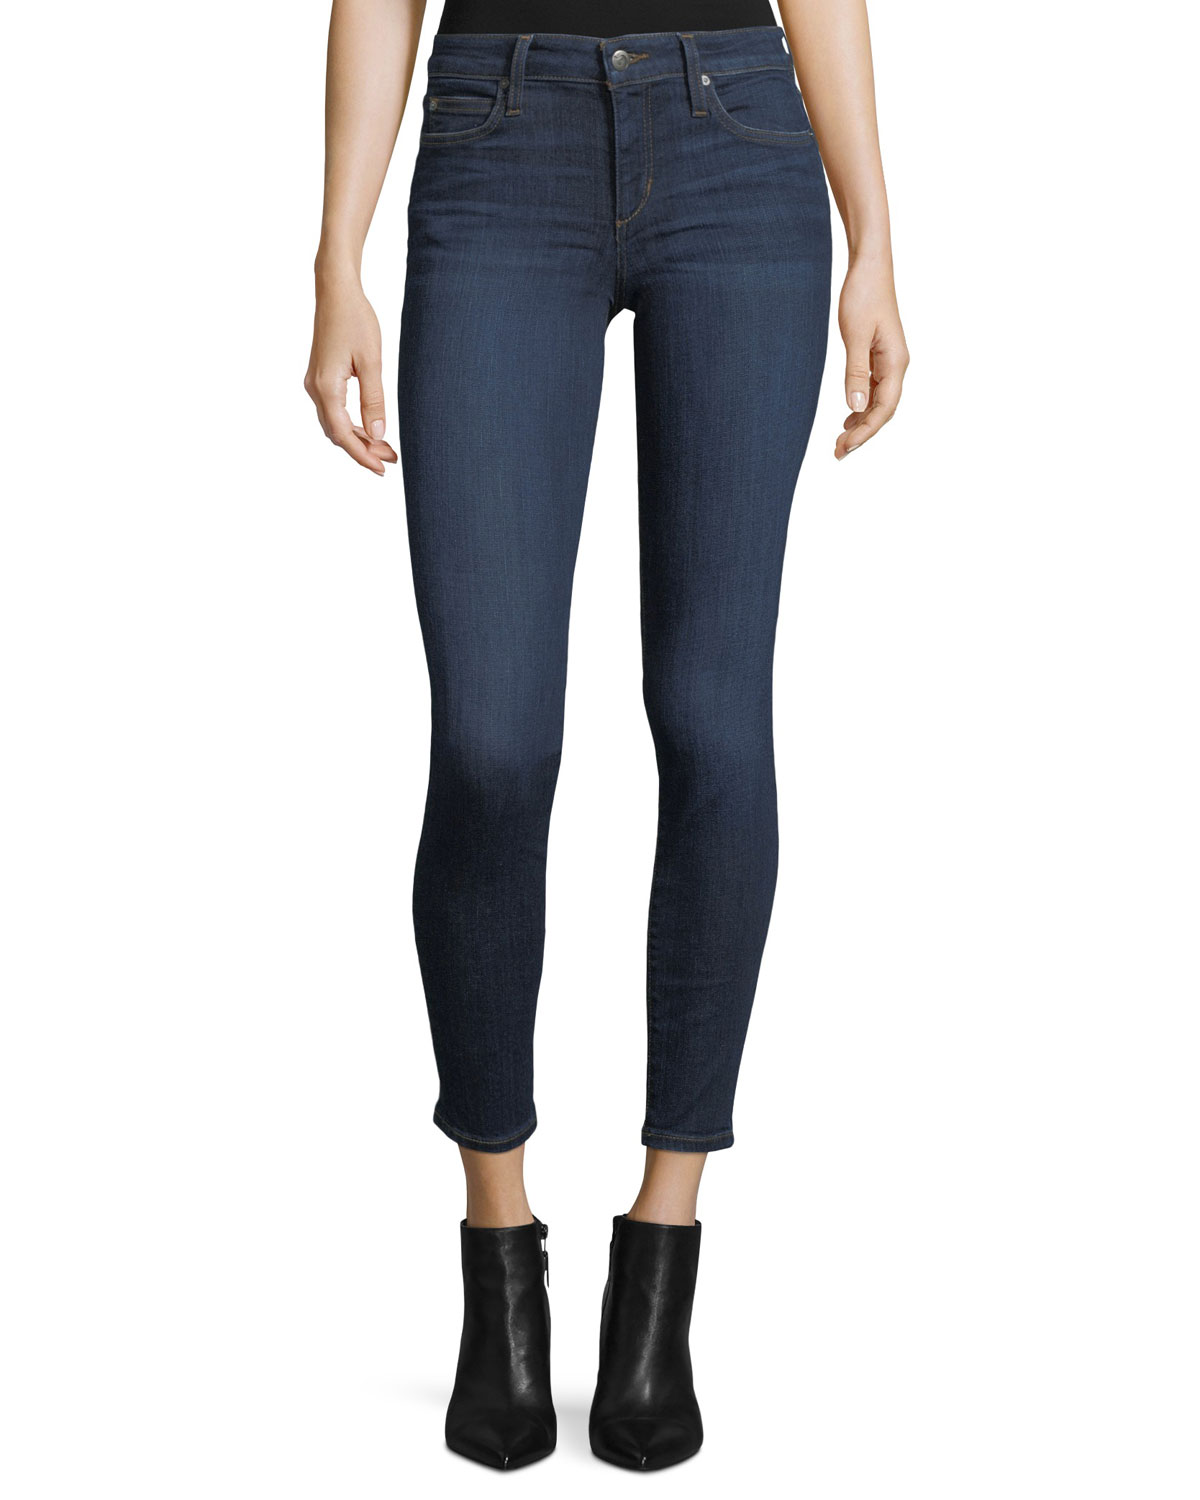 Joe S Jeans The Icon Skinny Ankle Jeans Neiman Marcus